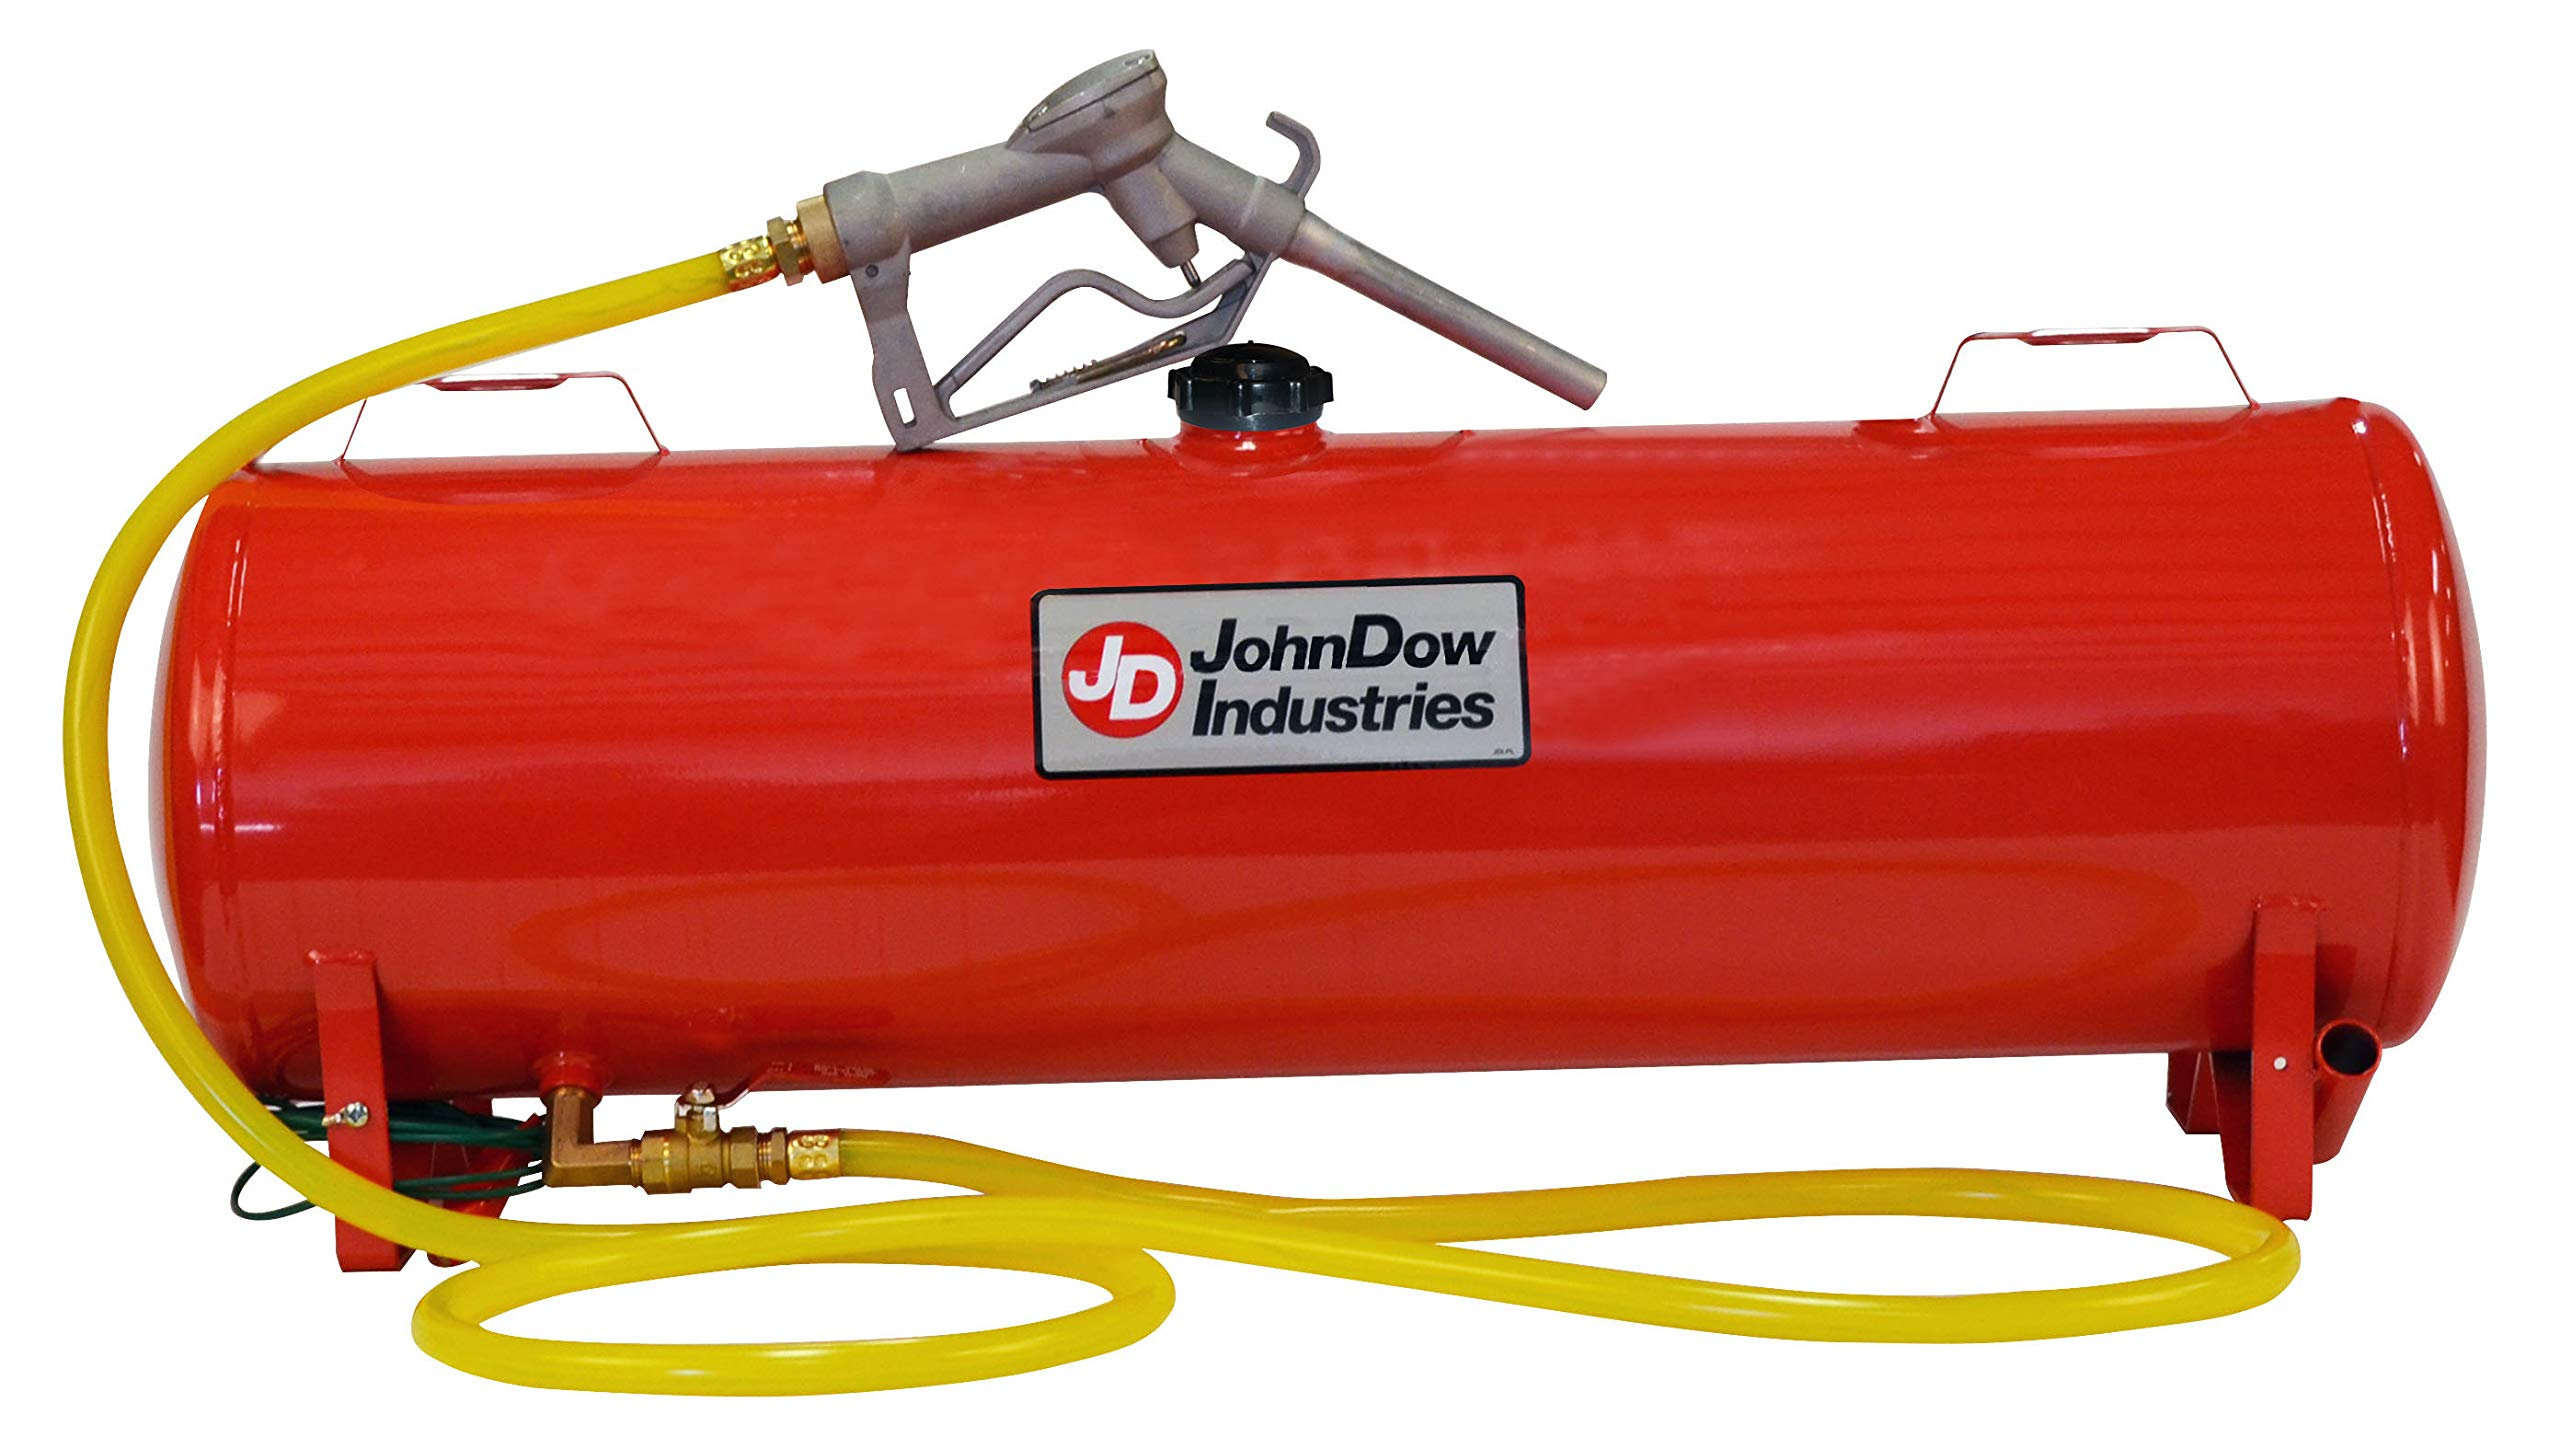 John Dow Industries JDI-FST15 15-Gallon Portable Fuel Station by JohnDow Industries